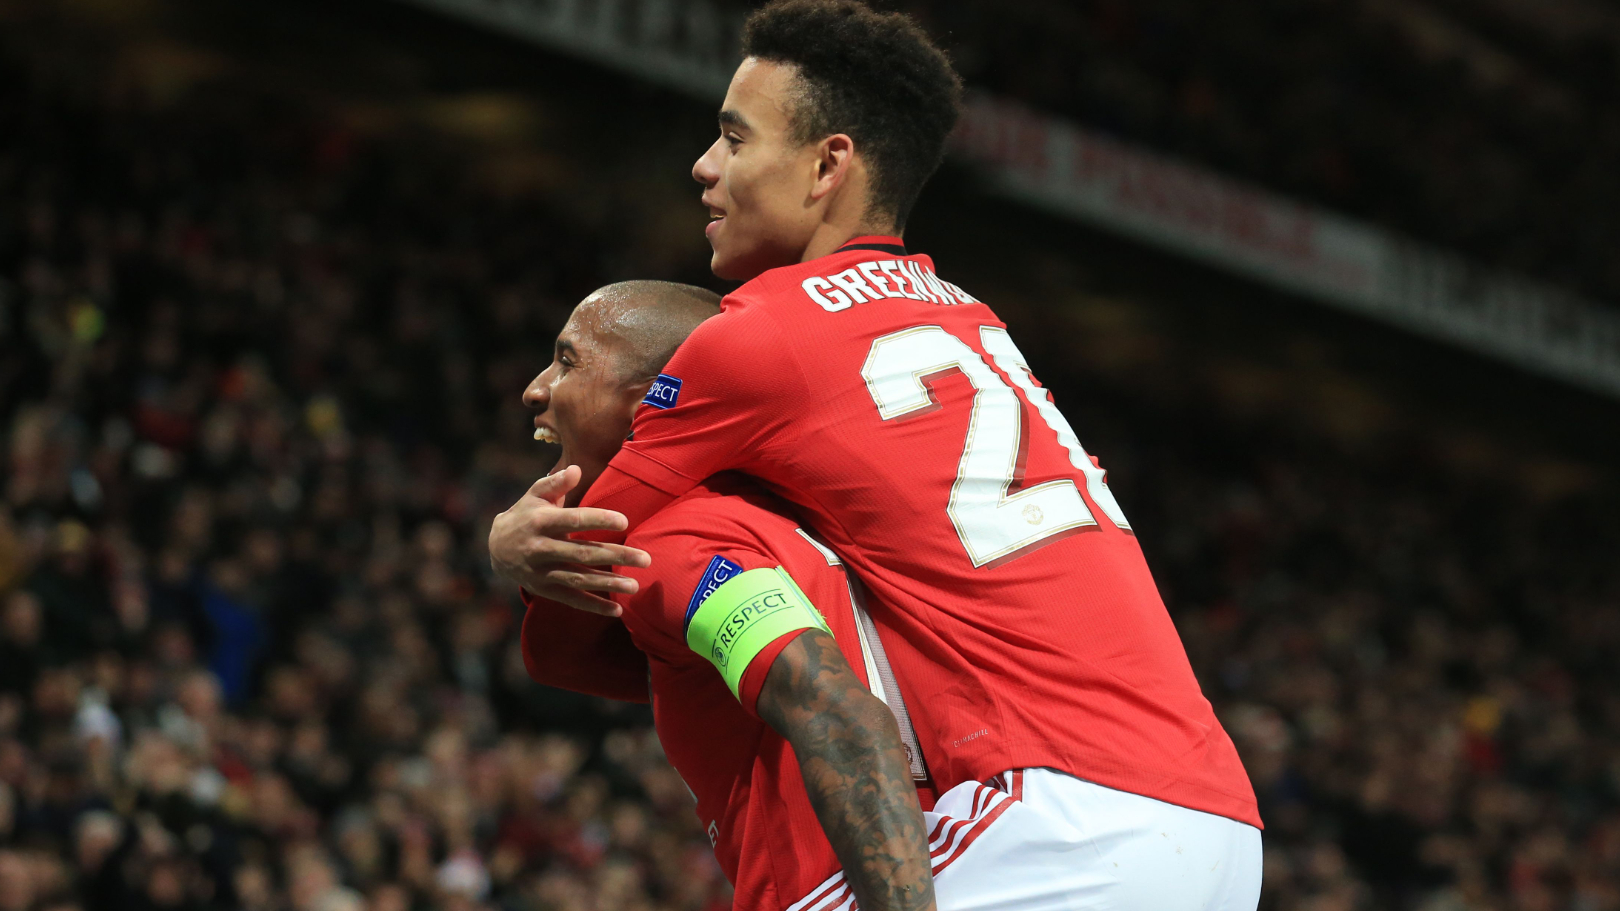 UEFA Europa League Report: Manchester United v AZ Alkmaar 12 December